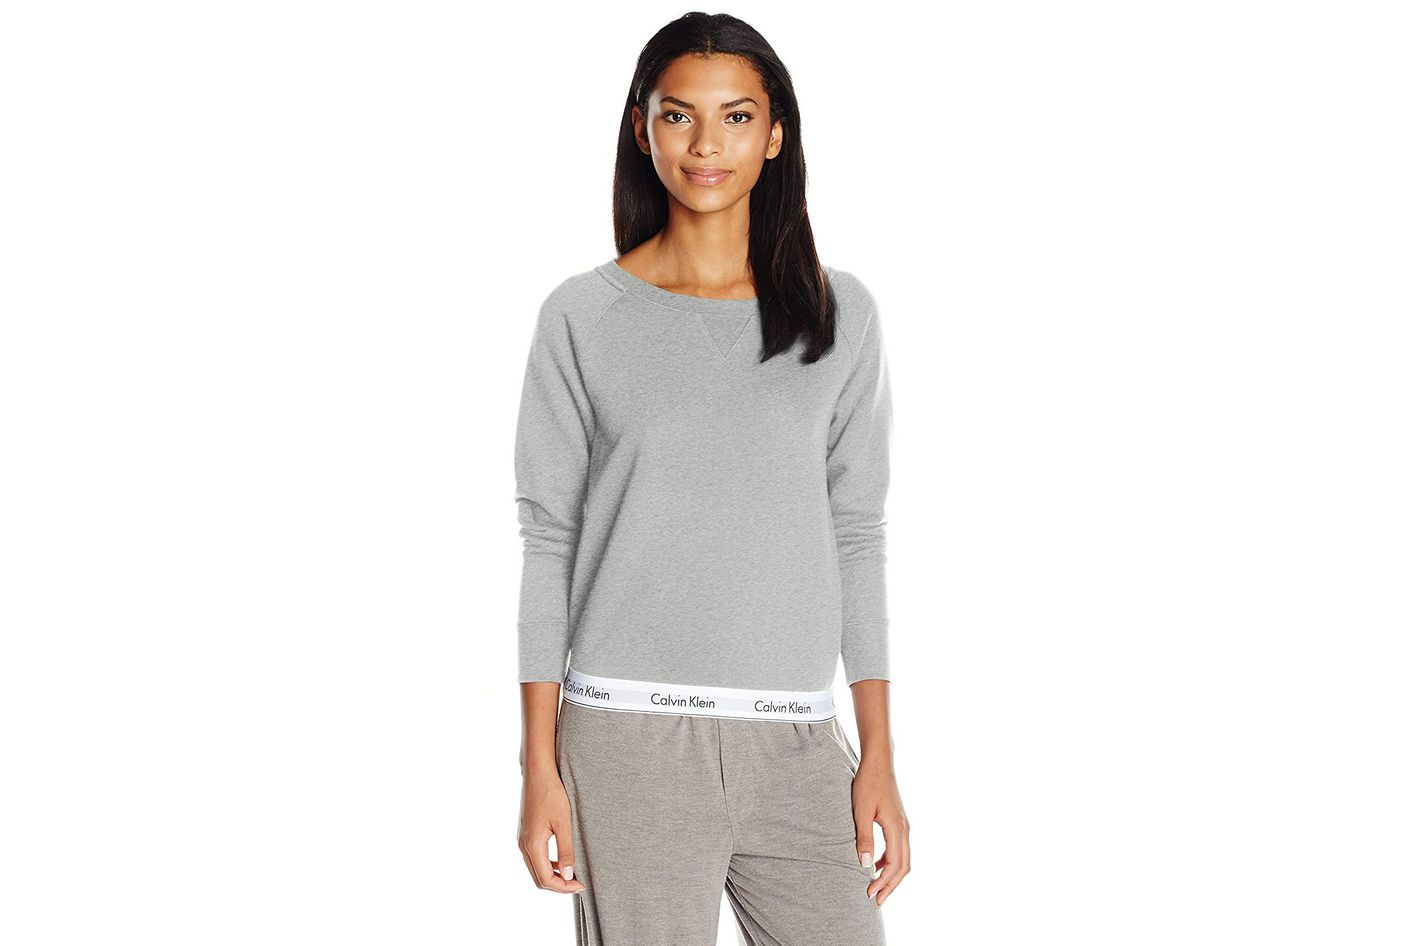 Calvin Klein Modern Cotton Long Sleeve Sweatshirt